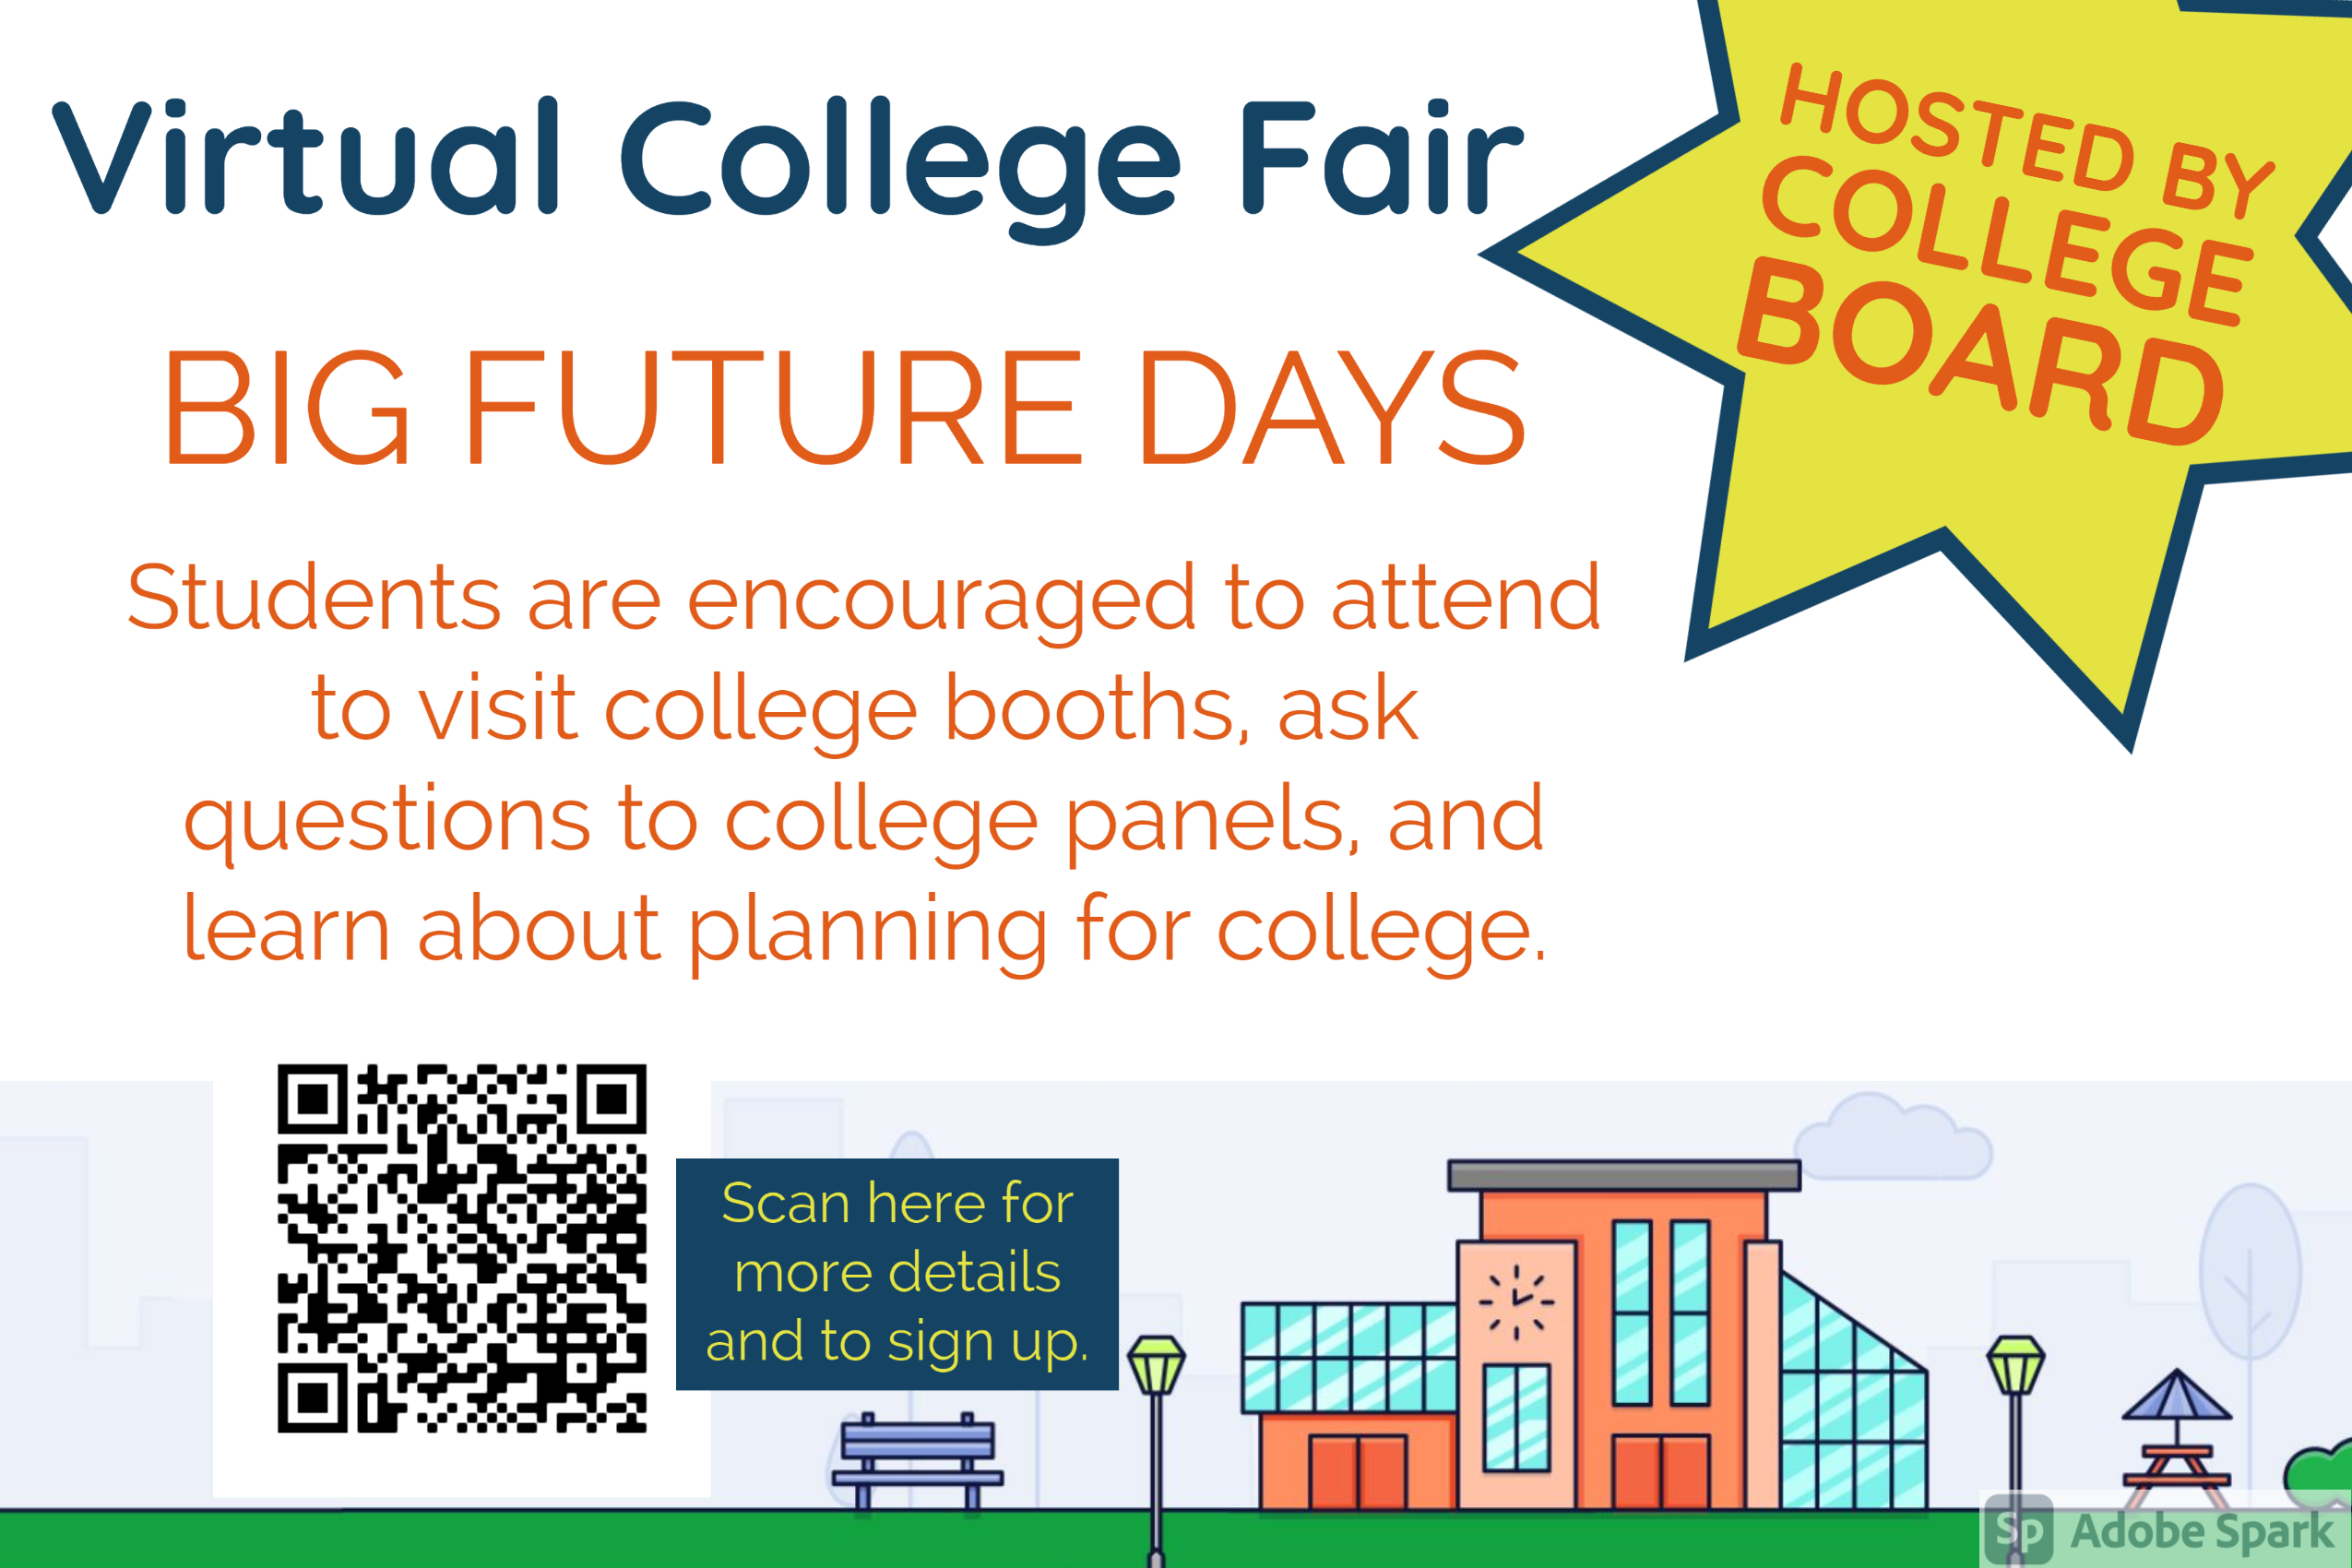 graphic about virtual college fair info